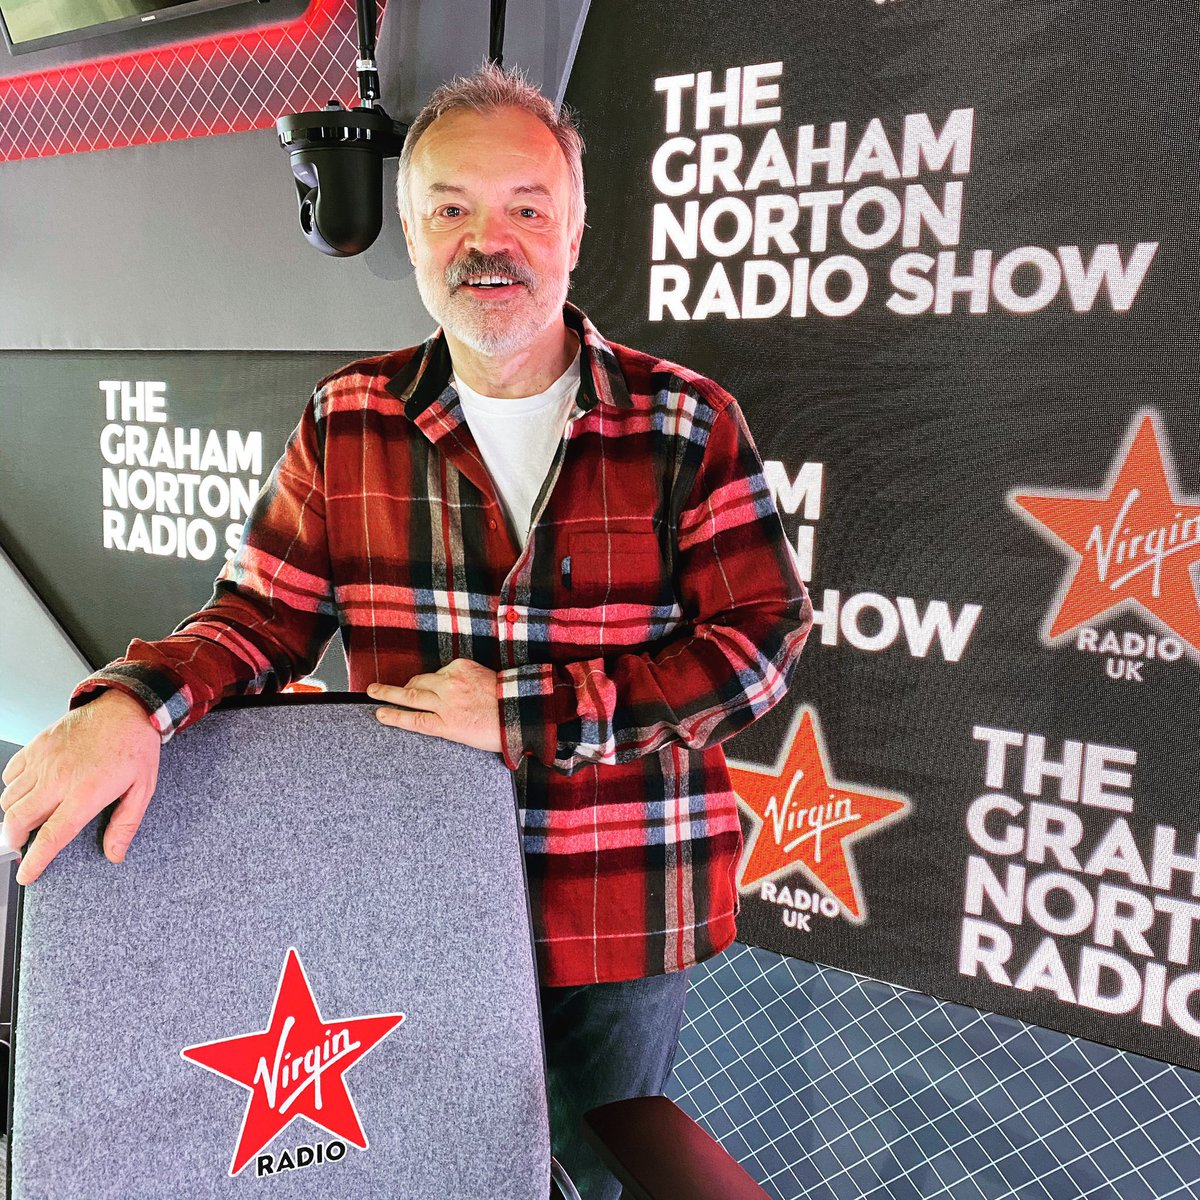 One of my fave things on a Saturday morning for giggles & entertainment is @grahnort and I am v happy his new @VirginRadioUK show is FABULOUS!!! Great guests and loving #TheGrahamNortonRadioShow 👏🏻👏🏻👏🏻👏🏻👏🏻🌟🌟🌟🌟🌟 #virginRadio